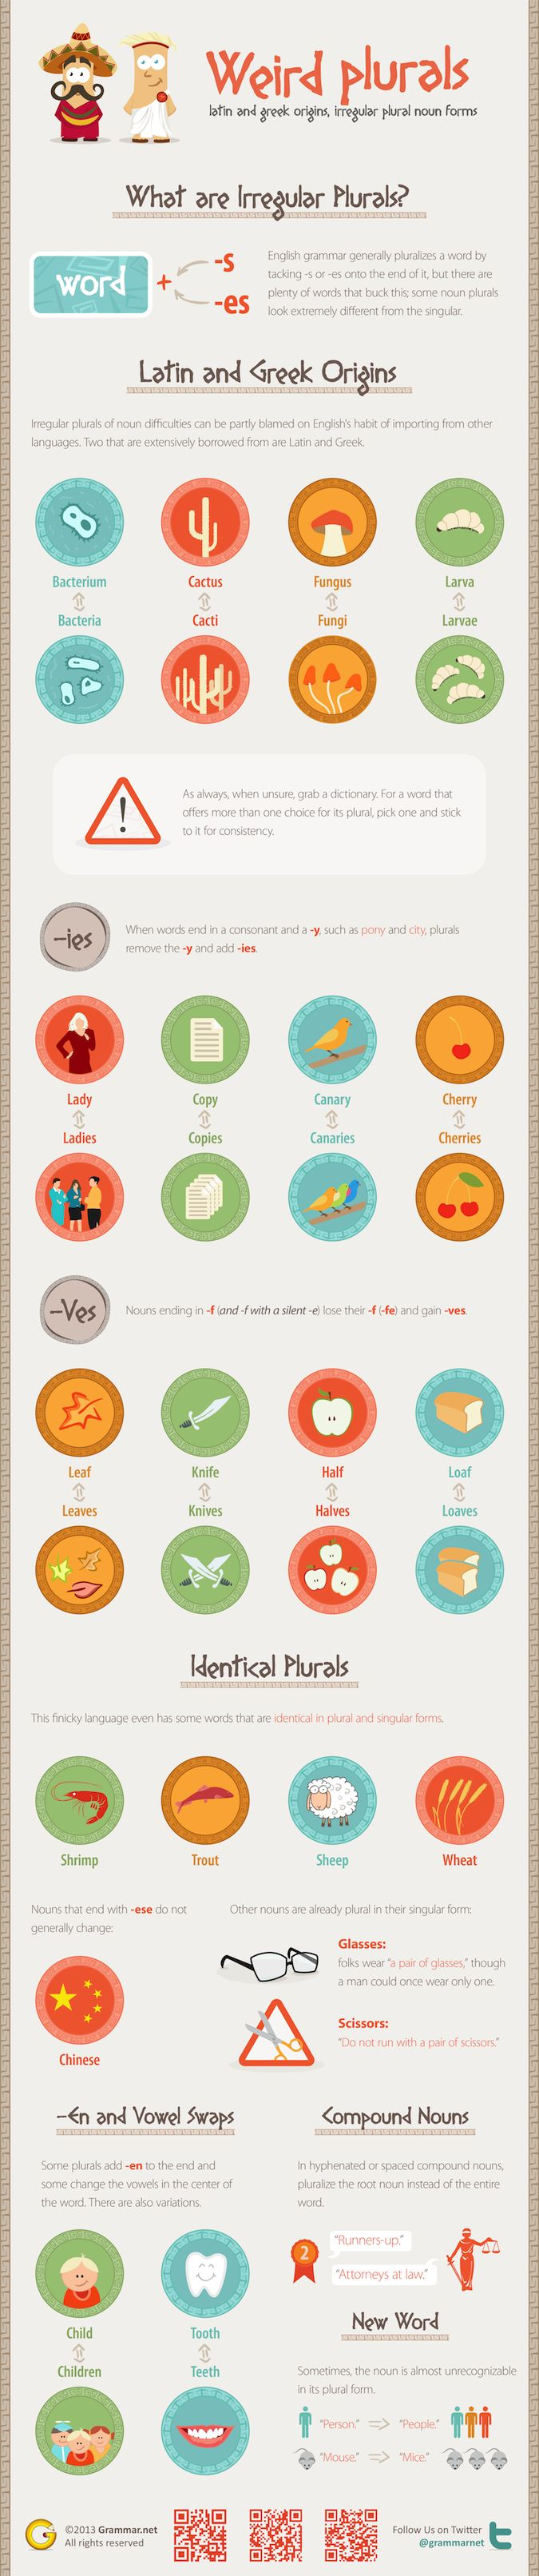 17 best images about nouns on pinterest possessive nouns for Plural of fish